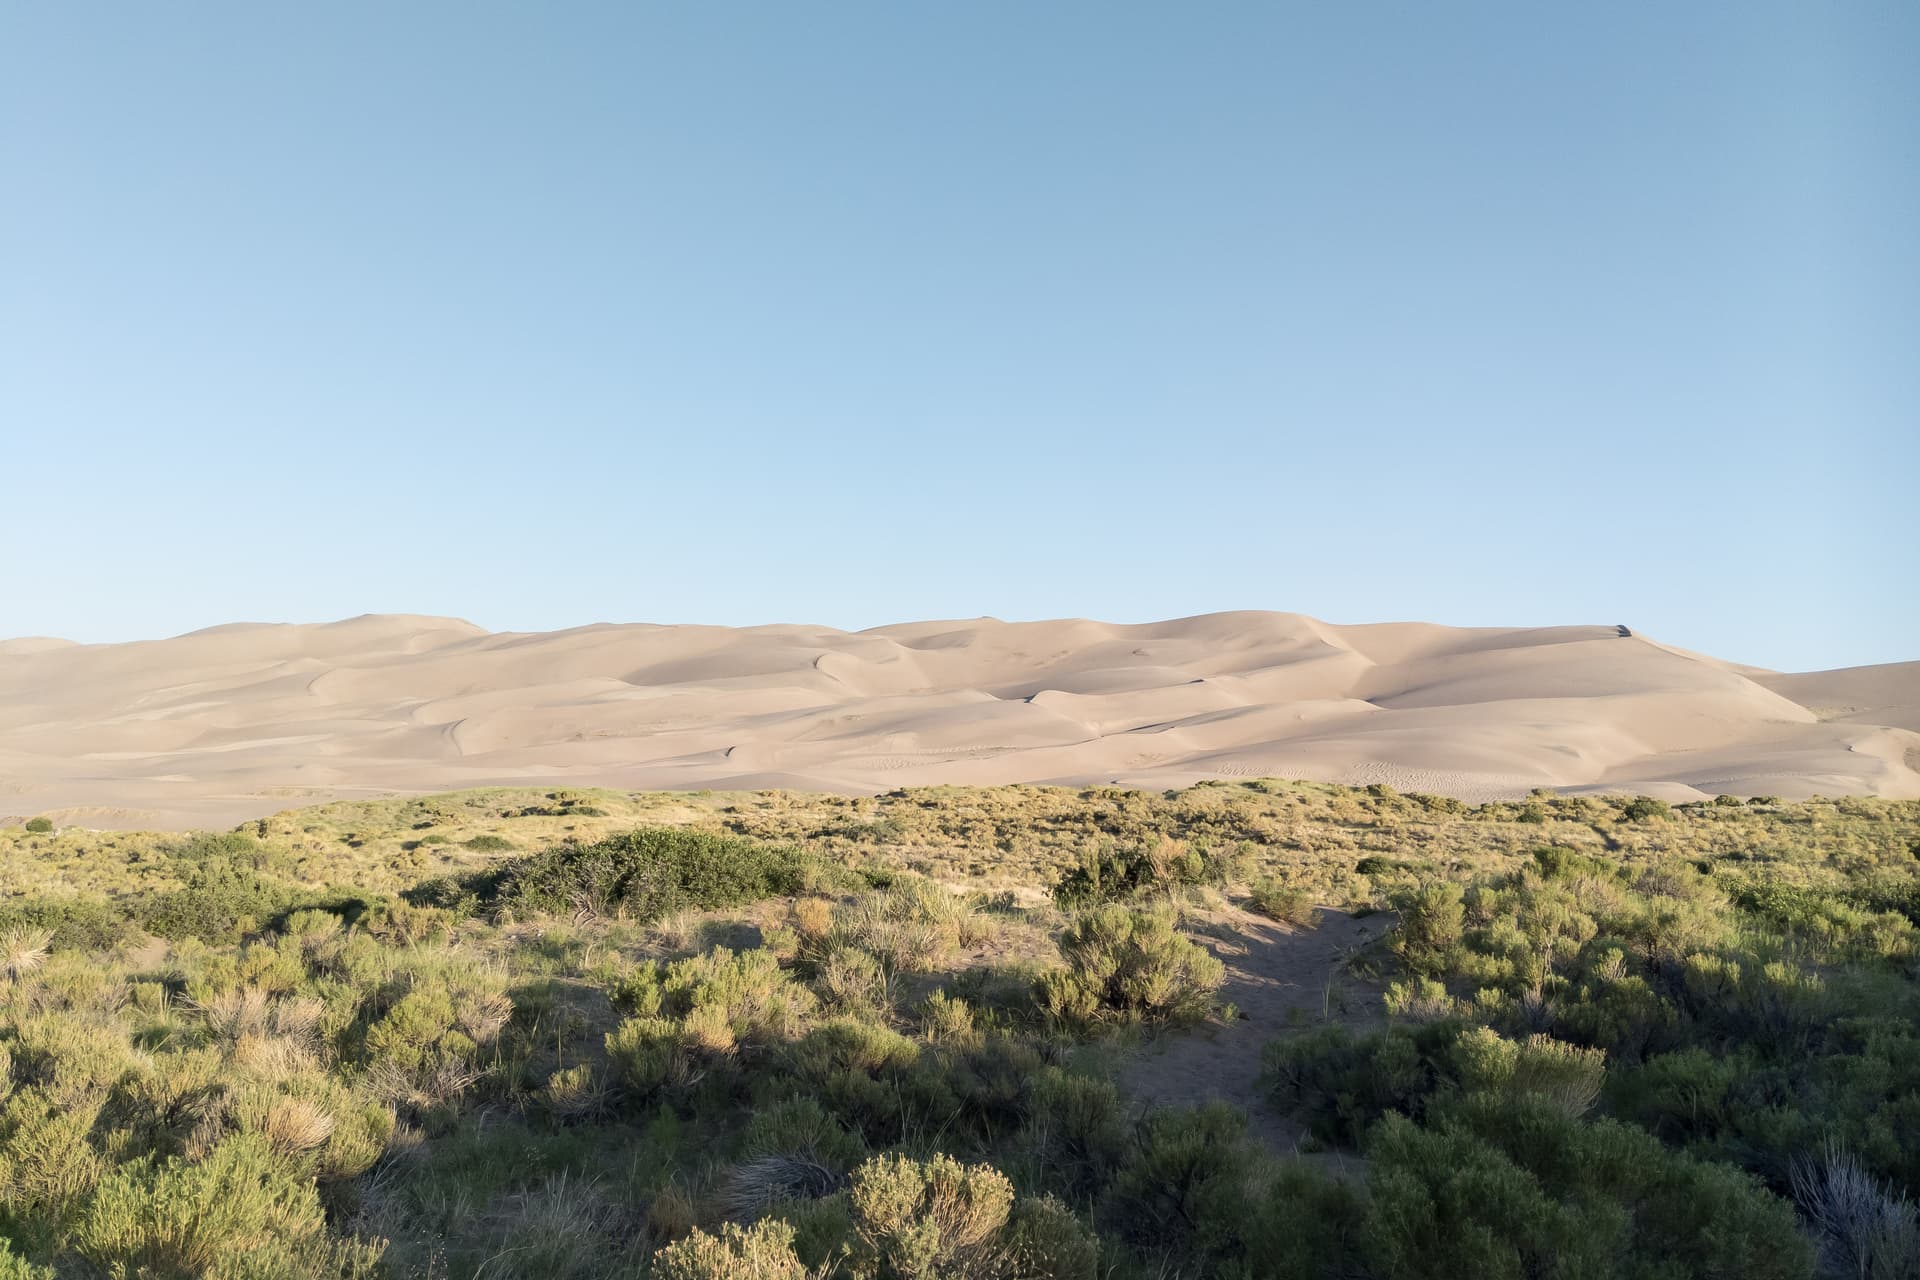 High desert scrubland ends abruptly in a field of high sand dunes.